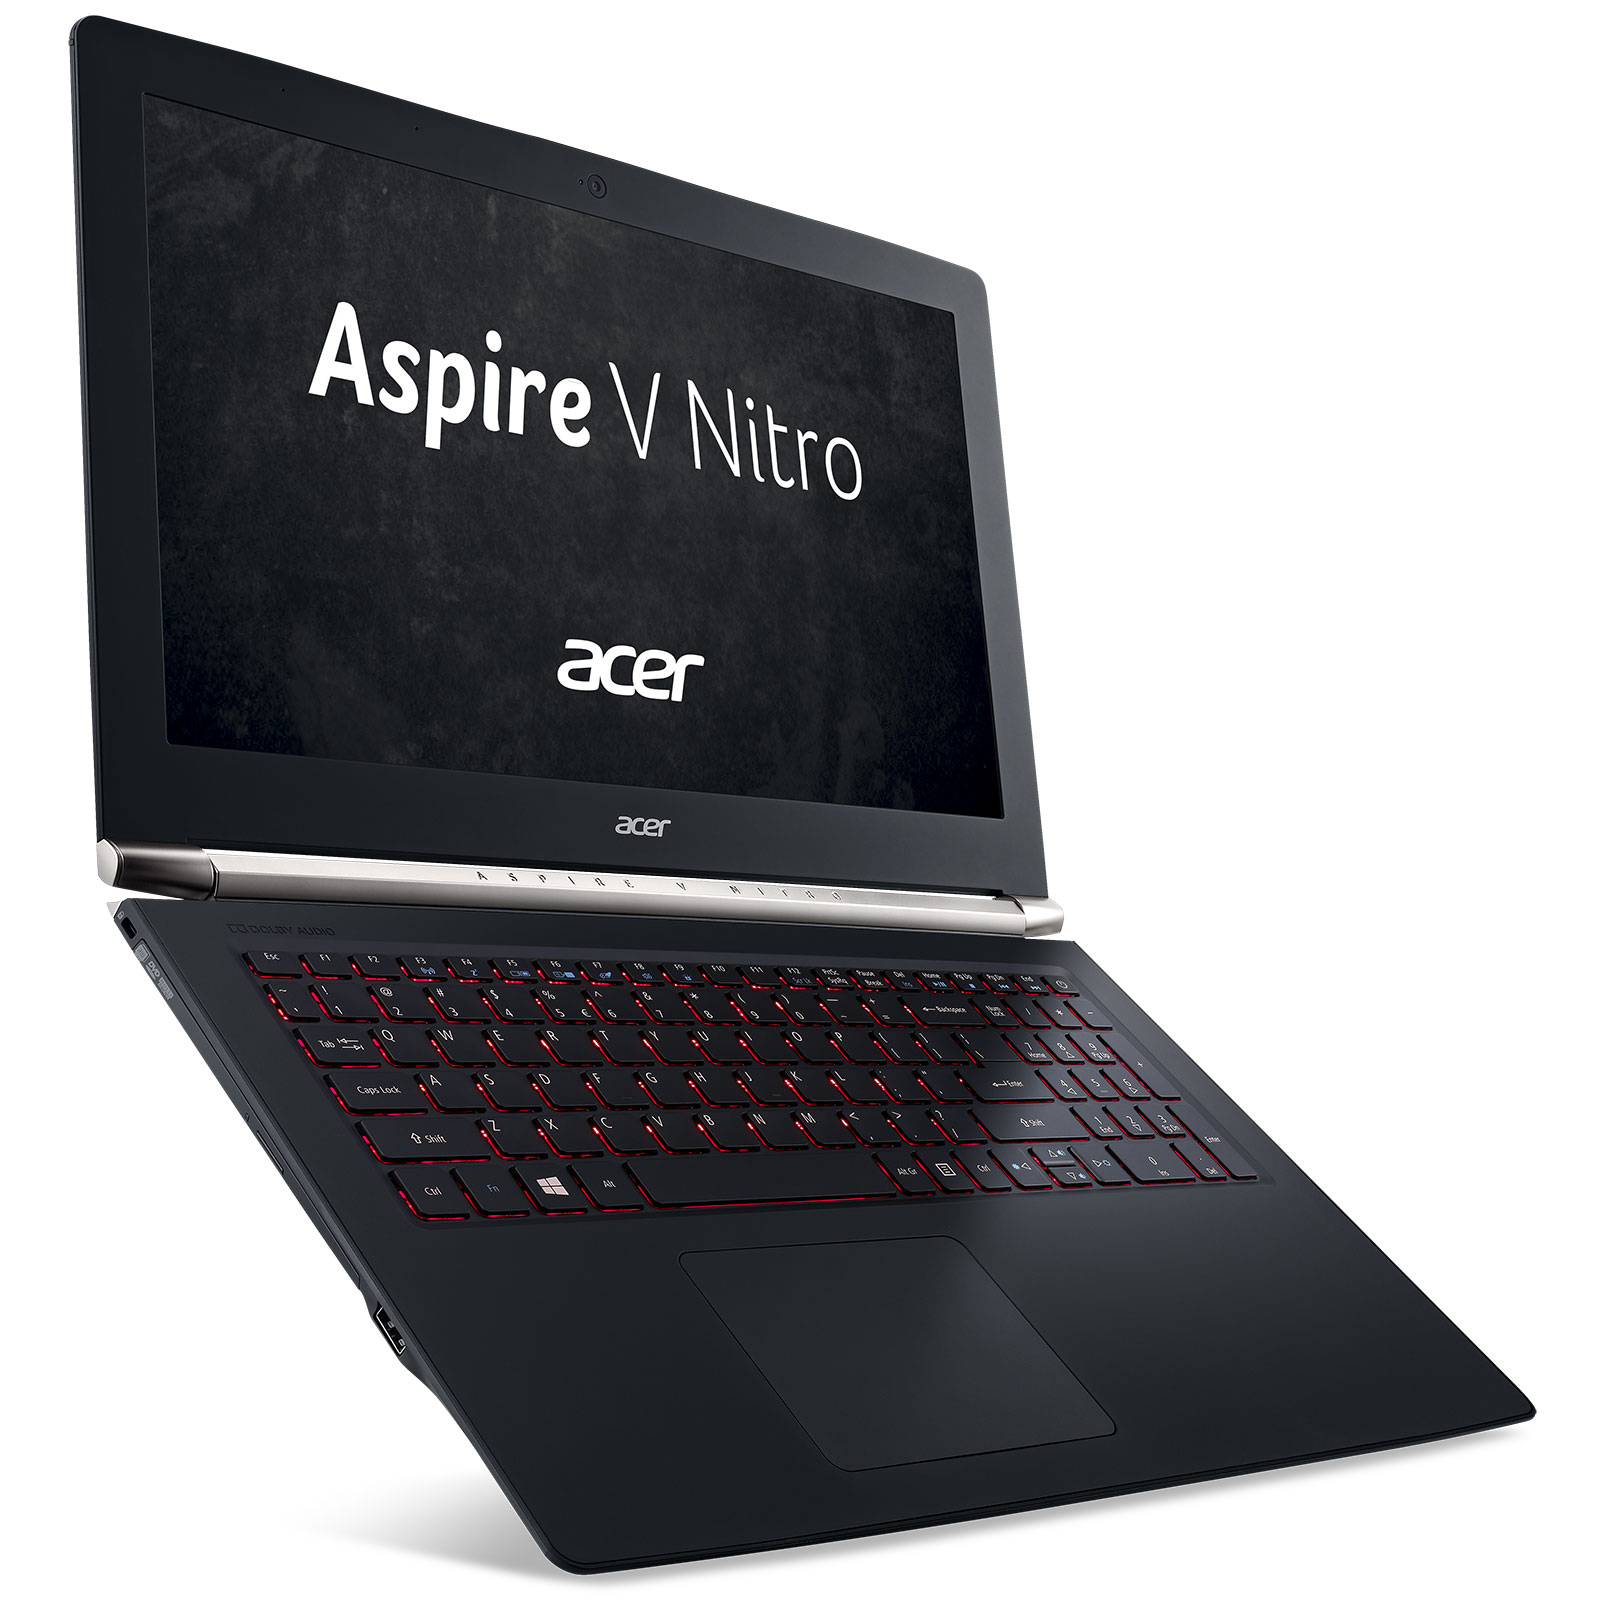 "PC portable Acer Aspire V Nitro VN7-572G-55WV Intel Core i5-6200U 8 Go SSD 128 Go + HDD 1 To 15.6"" LED HD NVIDIA GeForce GTX 950M Graveur DVD Wi-Fi AC/Bluetooth Webcam Windows 10 Famille 64 bits"